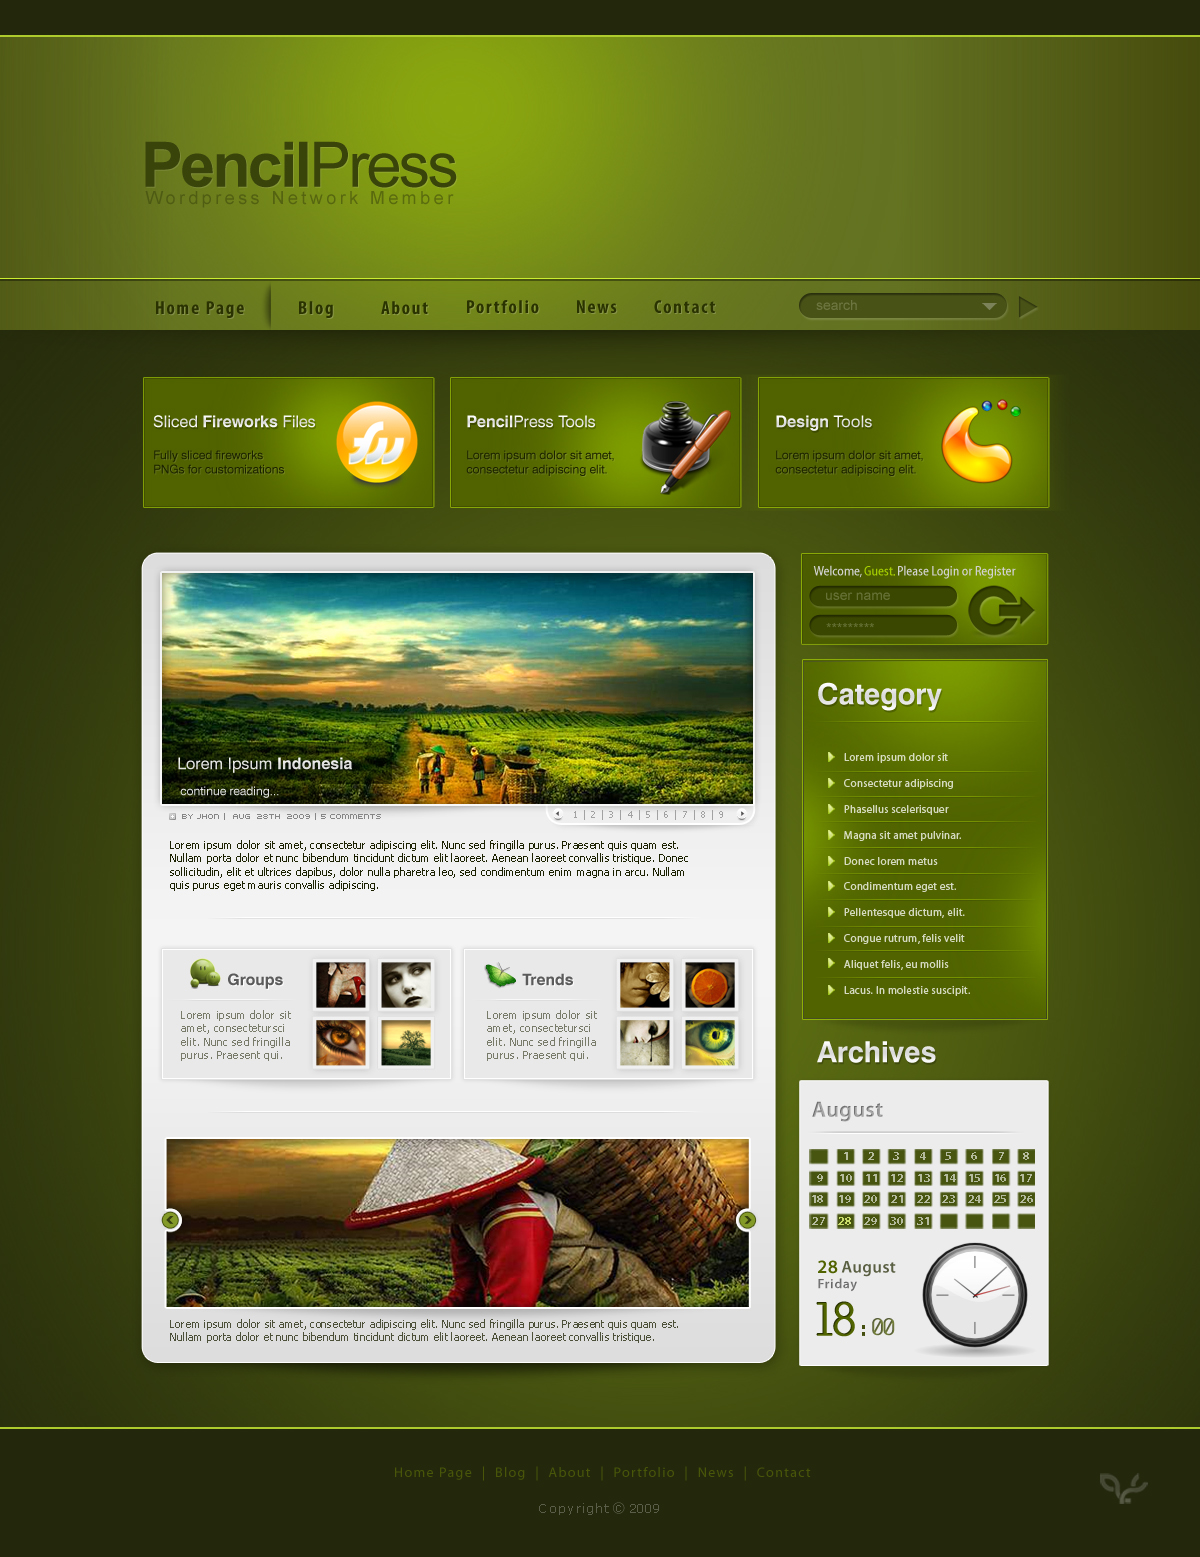 pencilpress theme by gdnz